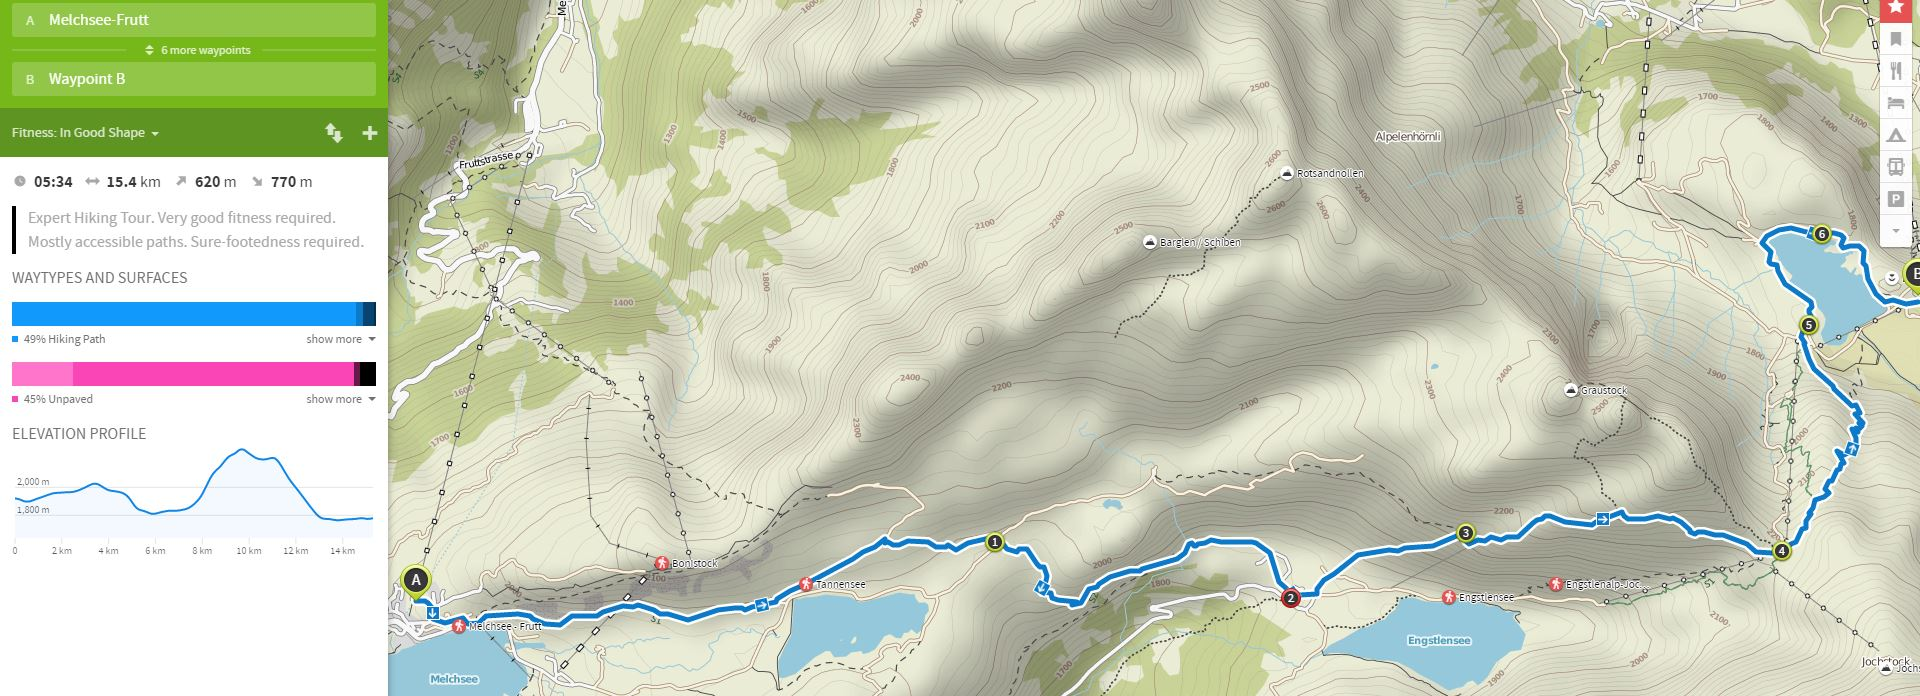 Melchsee-Frutt map